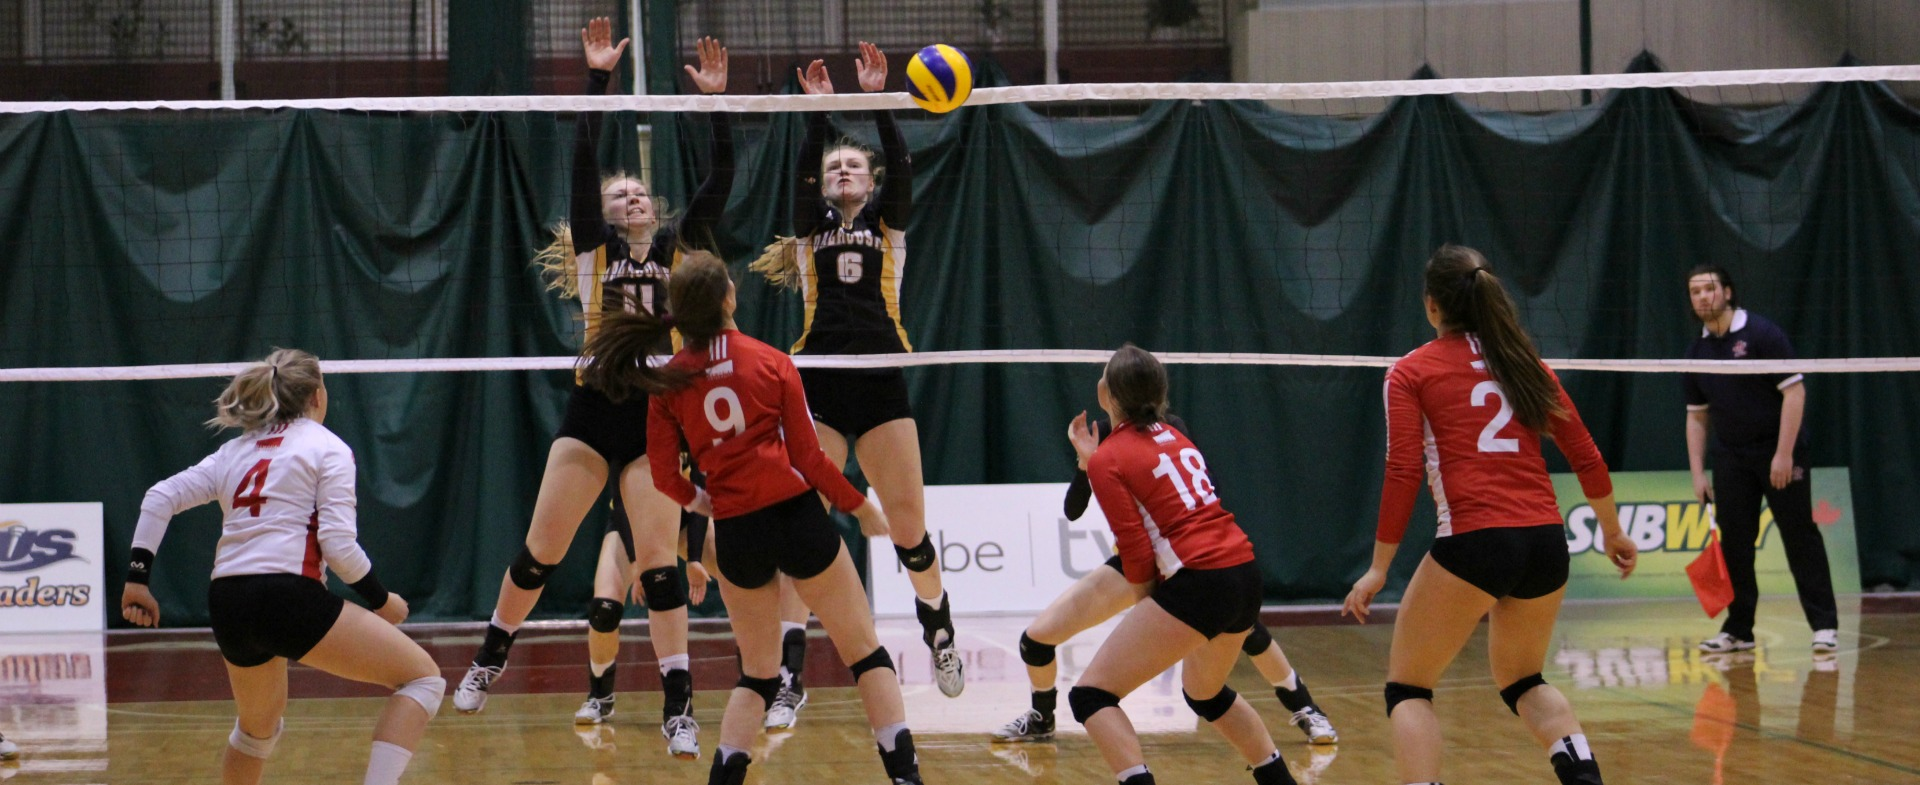 Tigers edge Sea-Hawks in 5 Sets